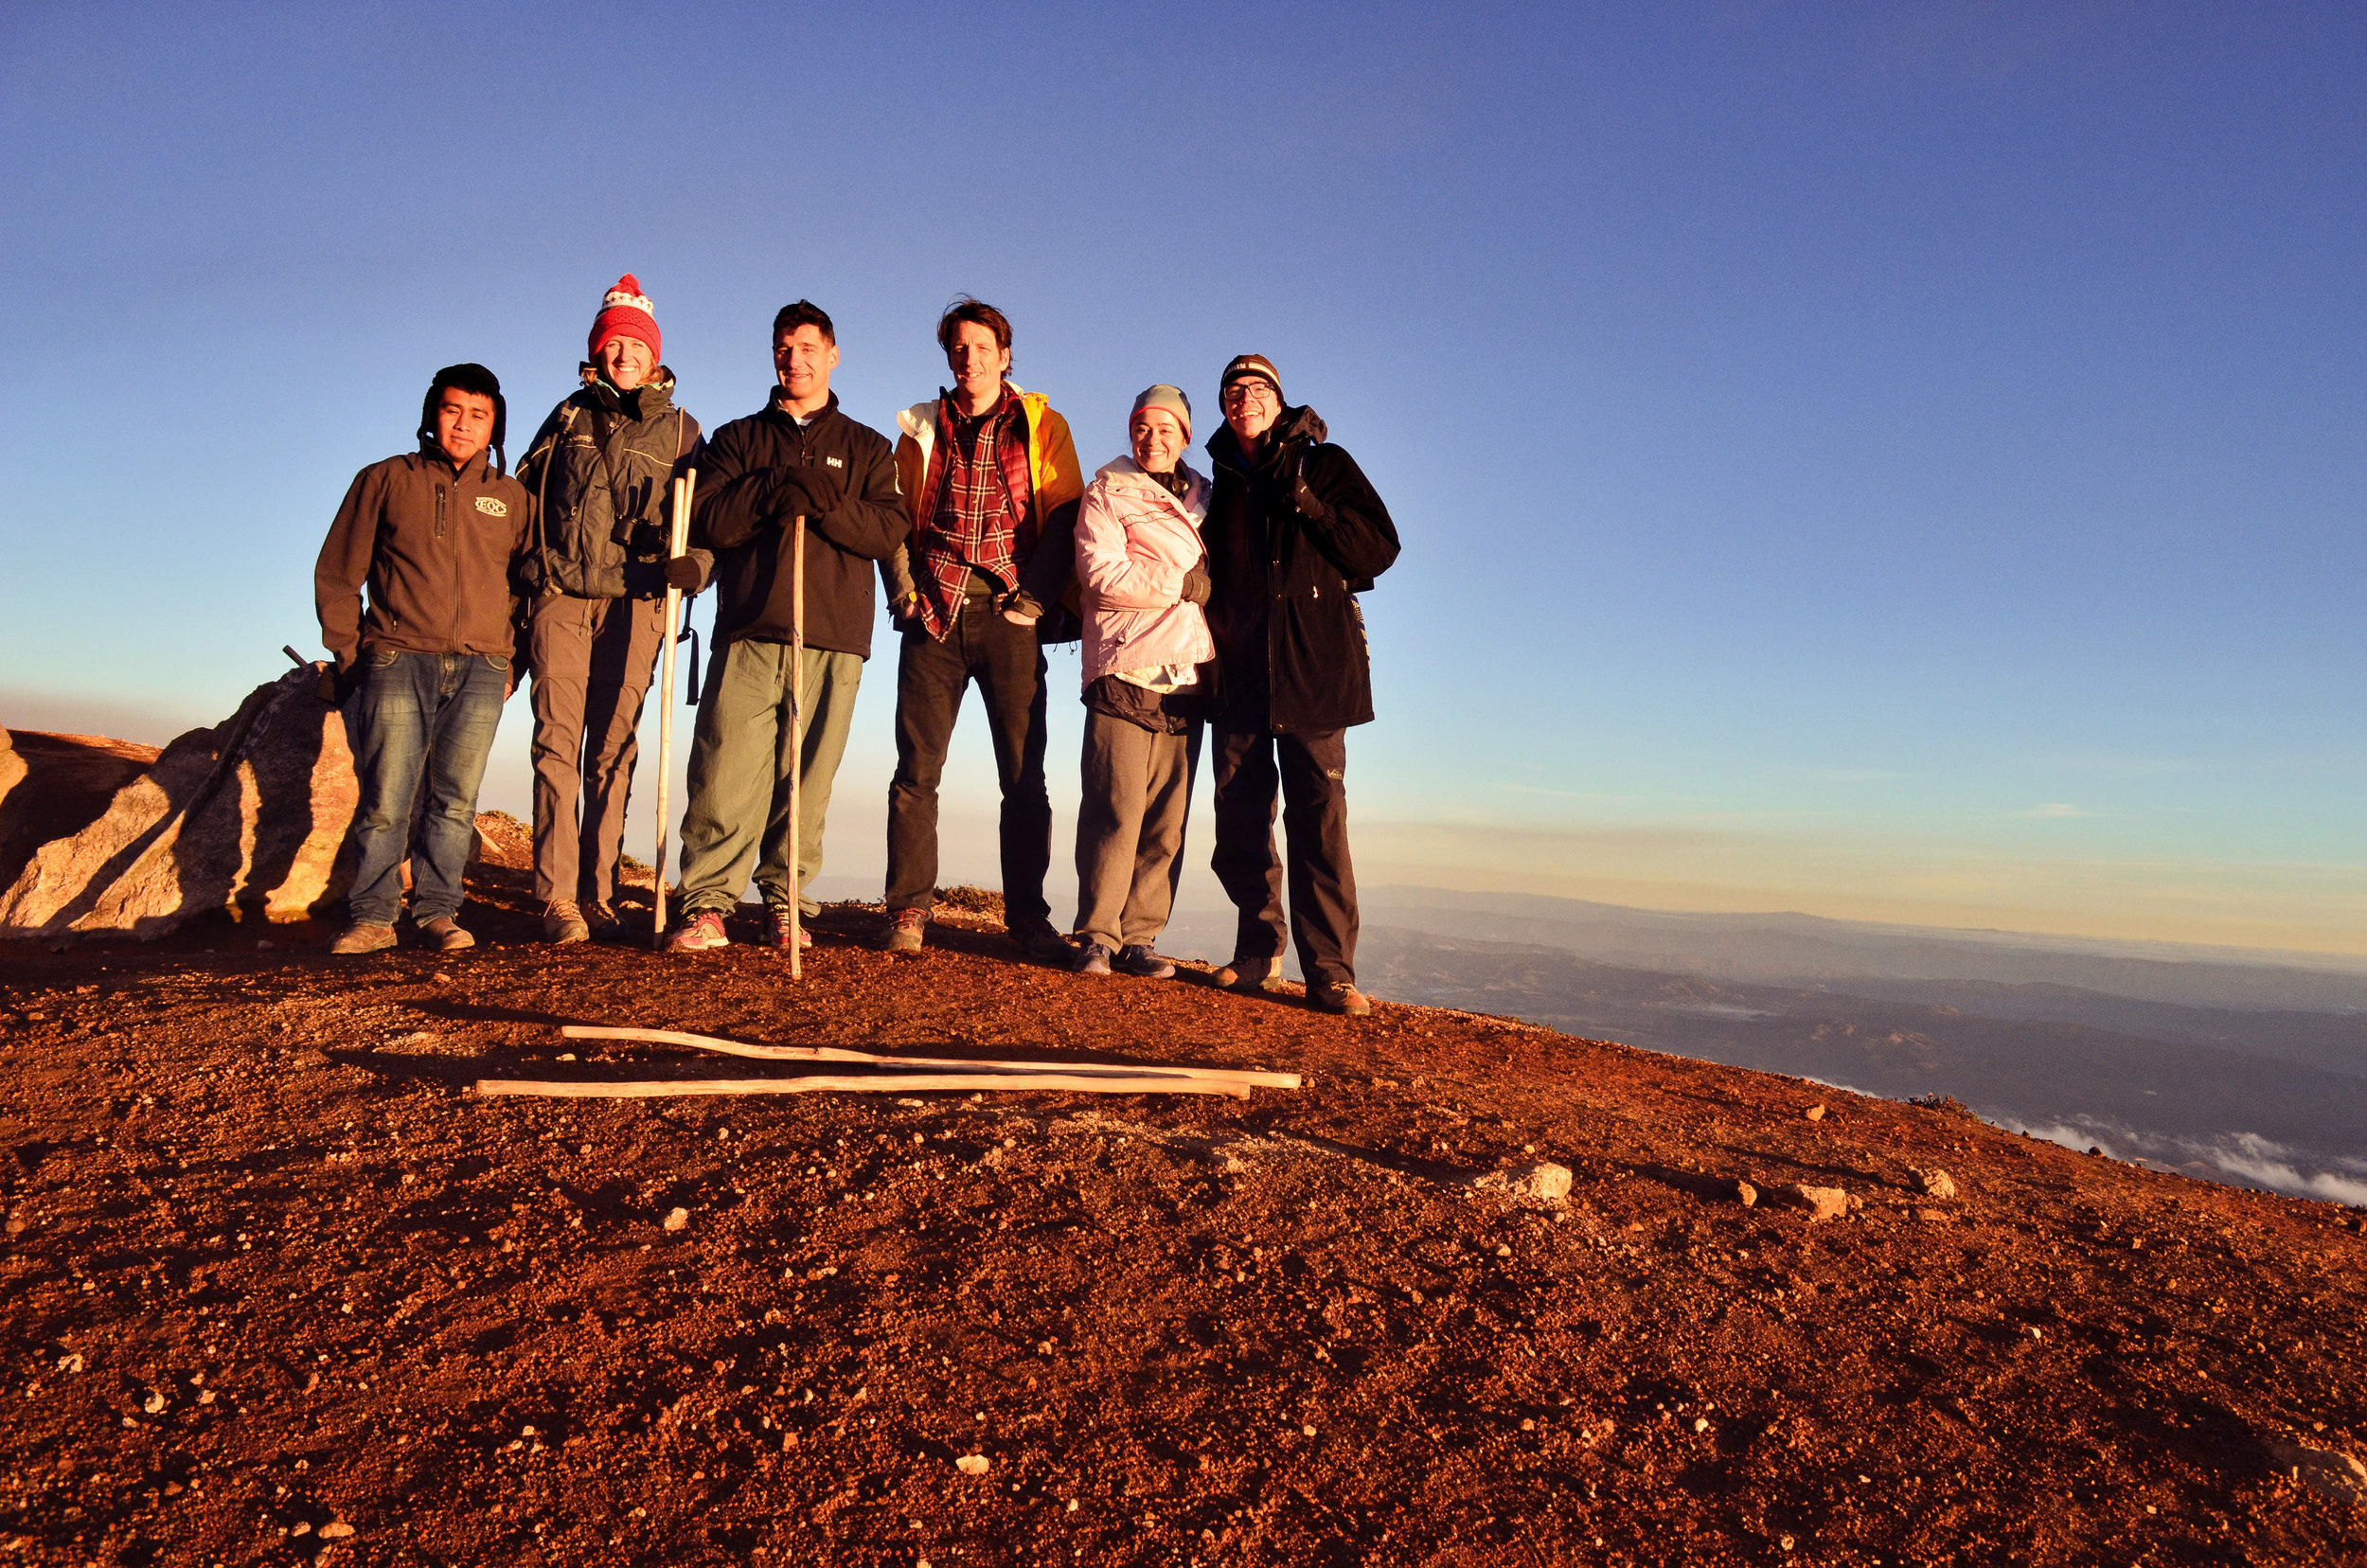 Our group at the summit of Acatenango